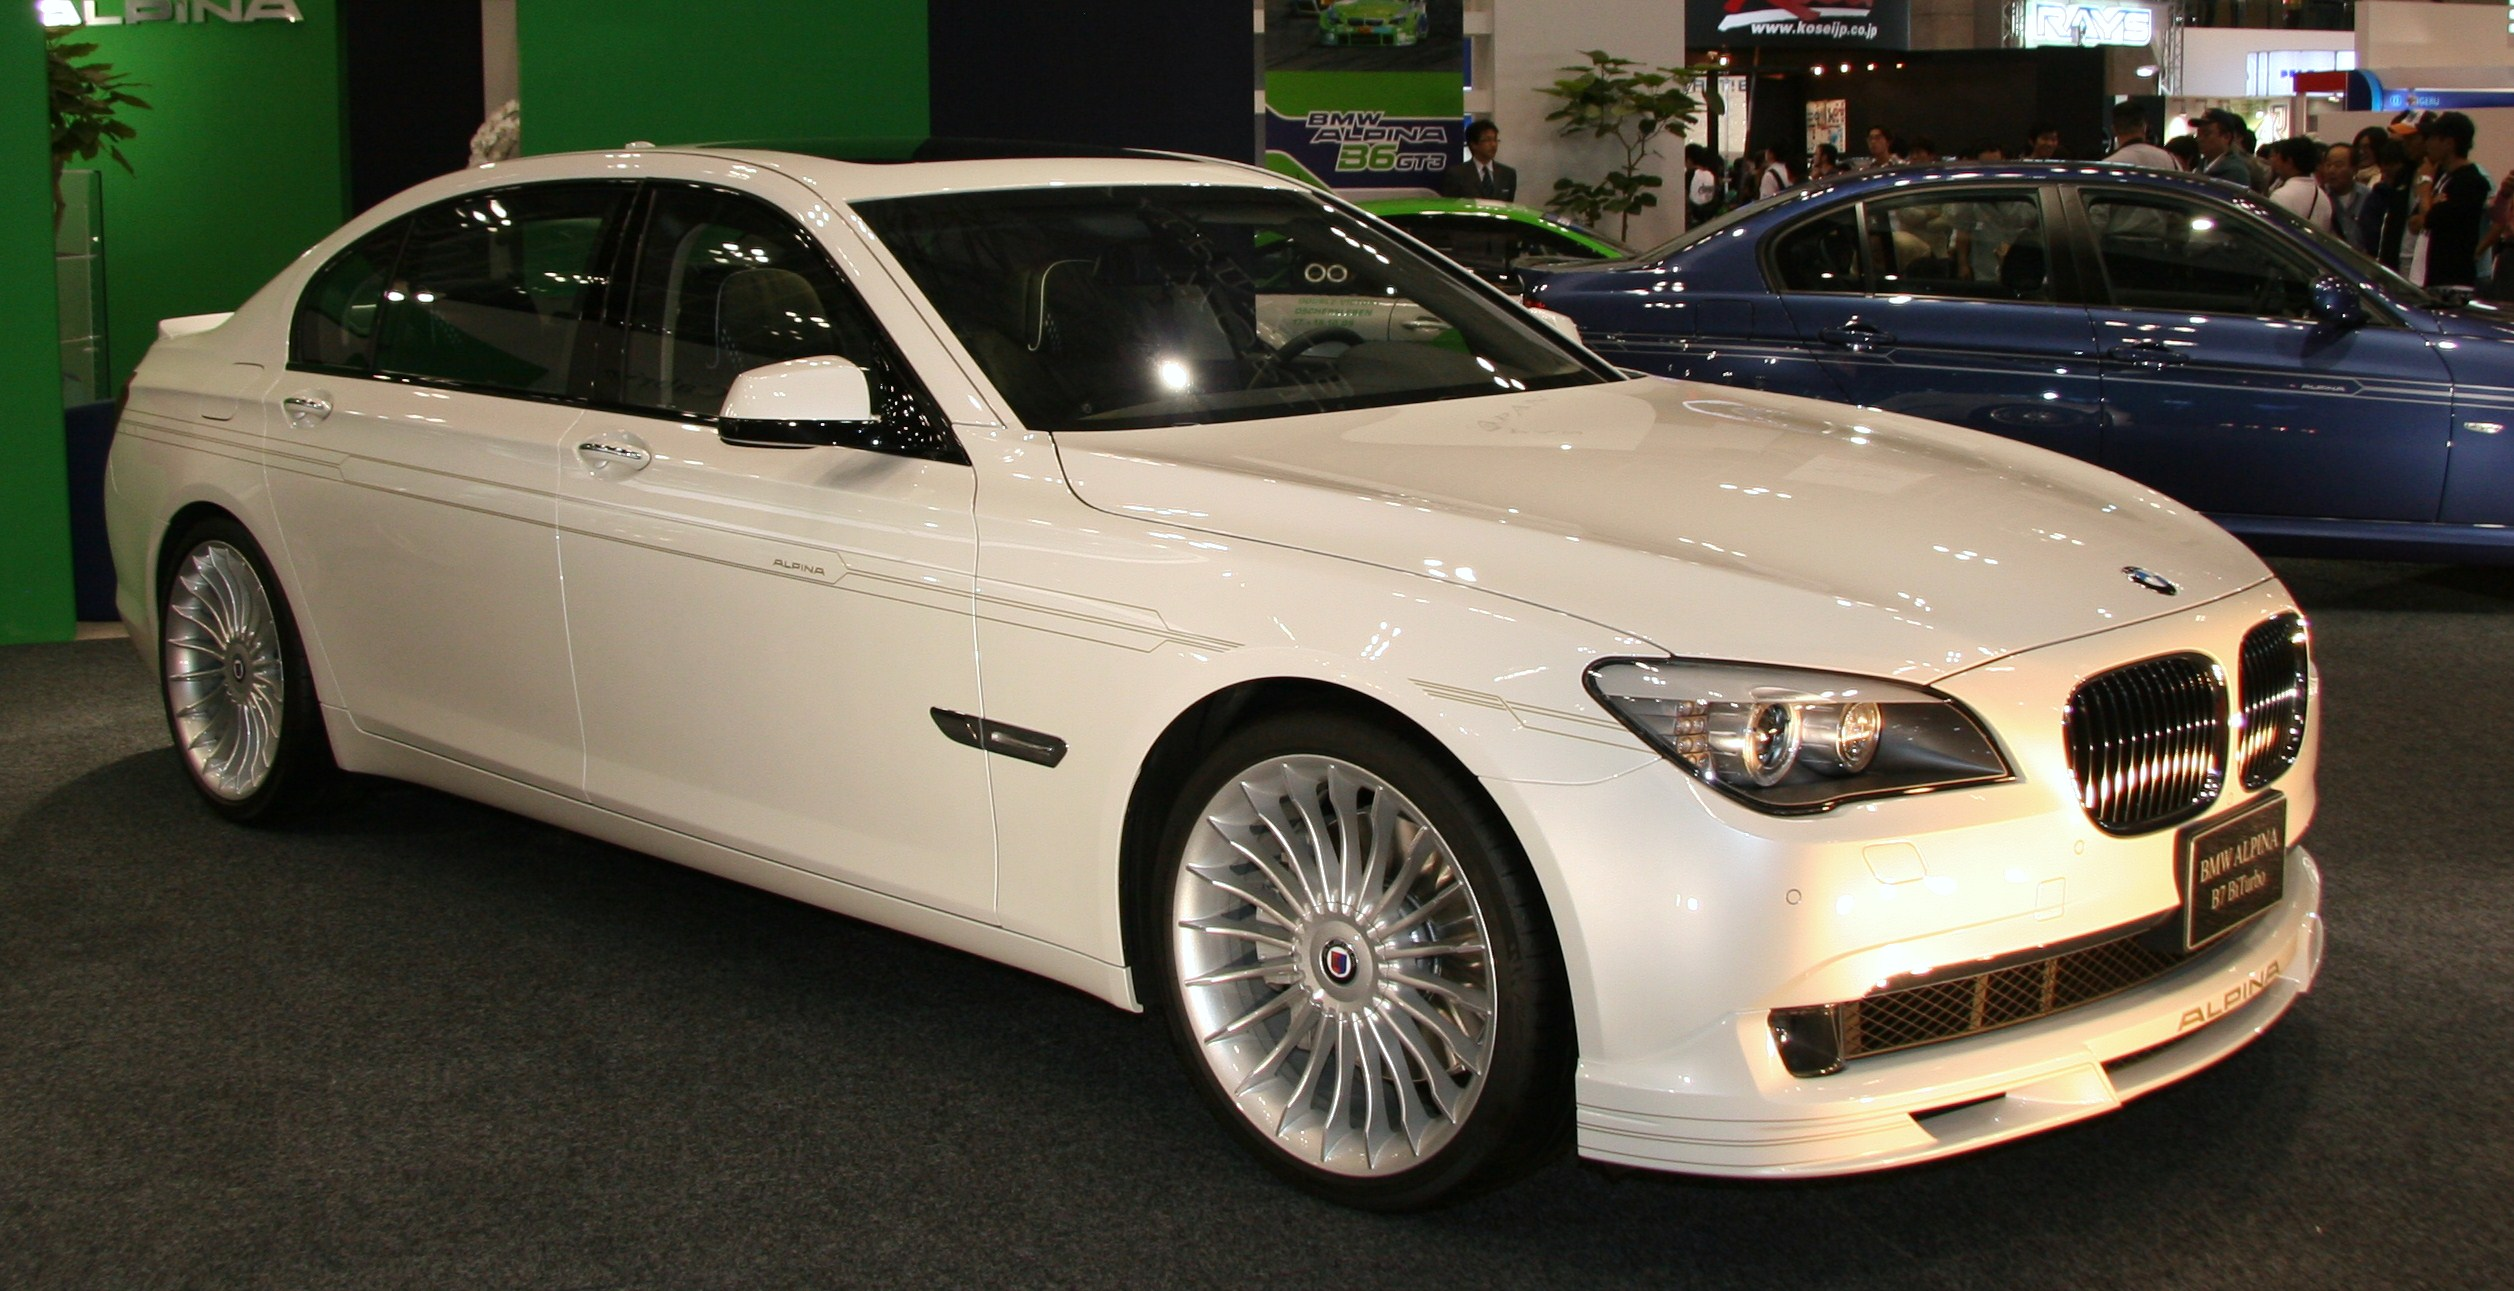 File:BMW Alpina B7 BiTurbo Limousine Long.jpg - Wikimedia Commons